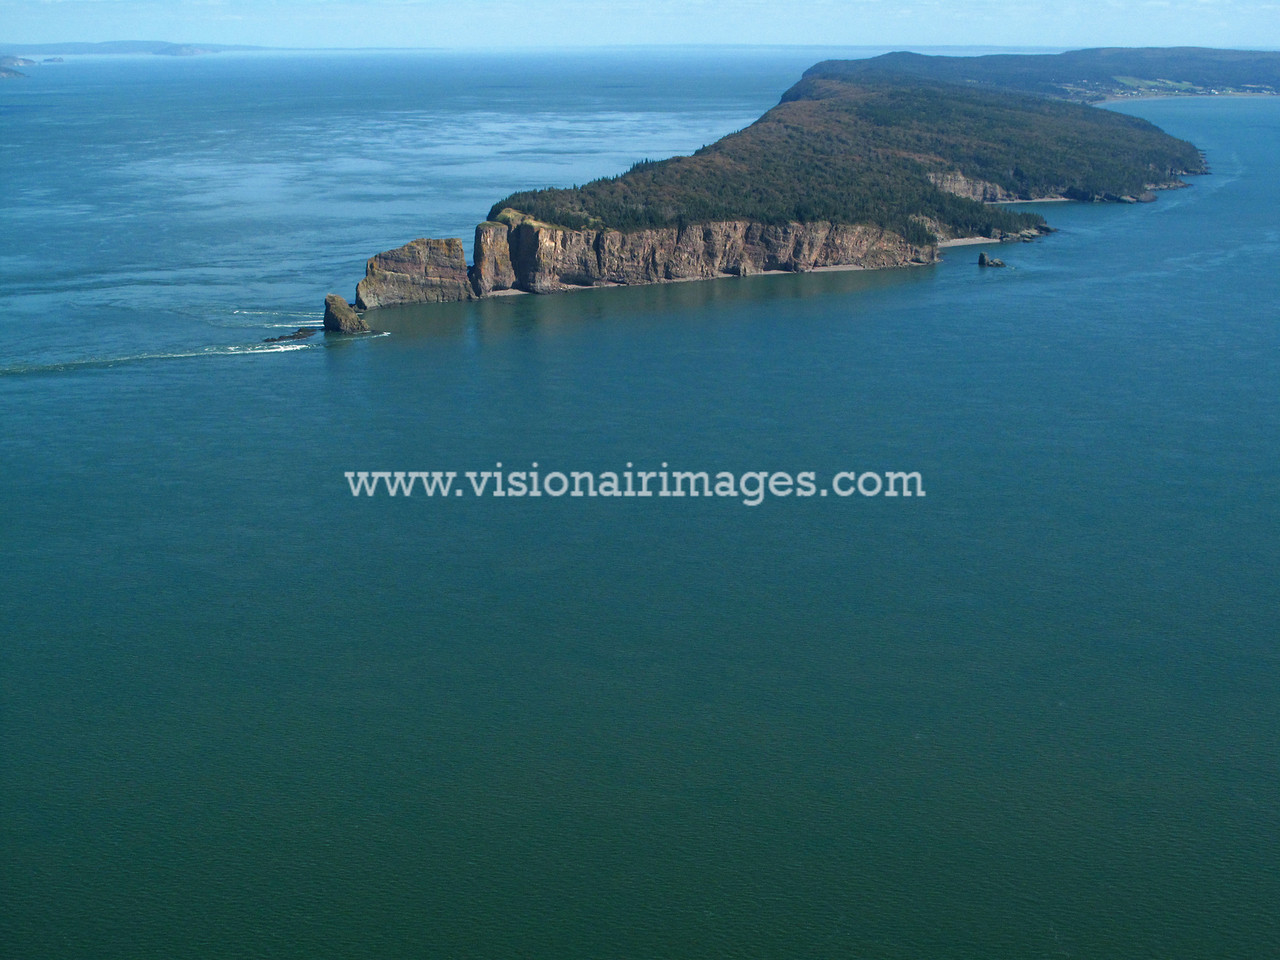 Cape Split, Scots Bay, Bay of Fundy, Nova Scotia, Canada